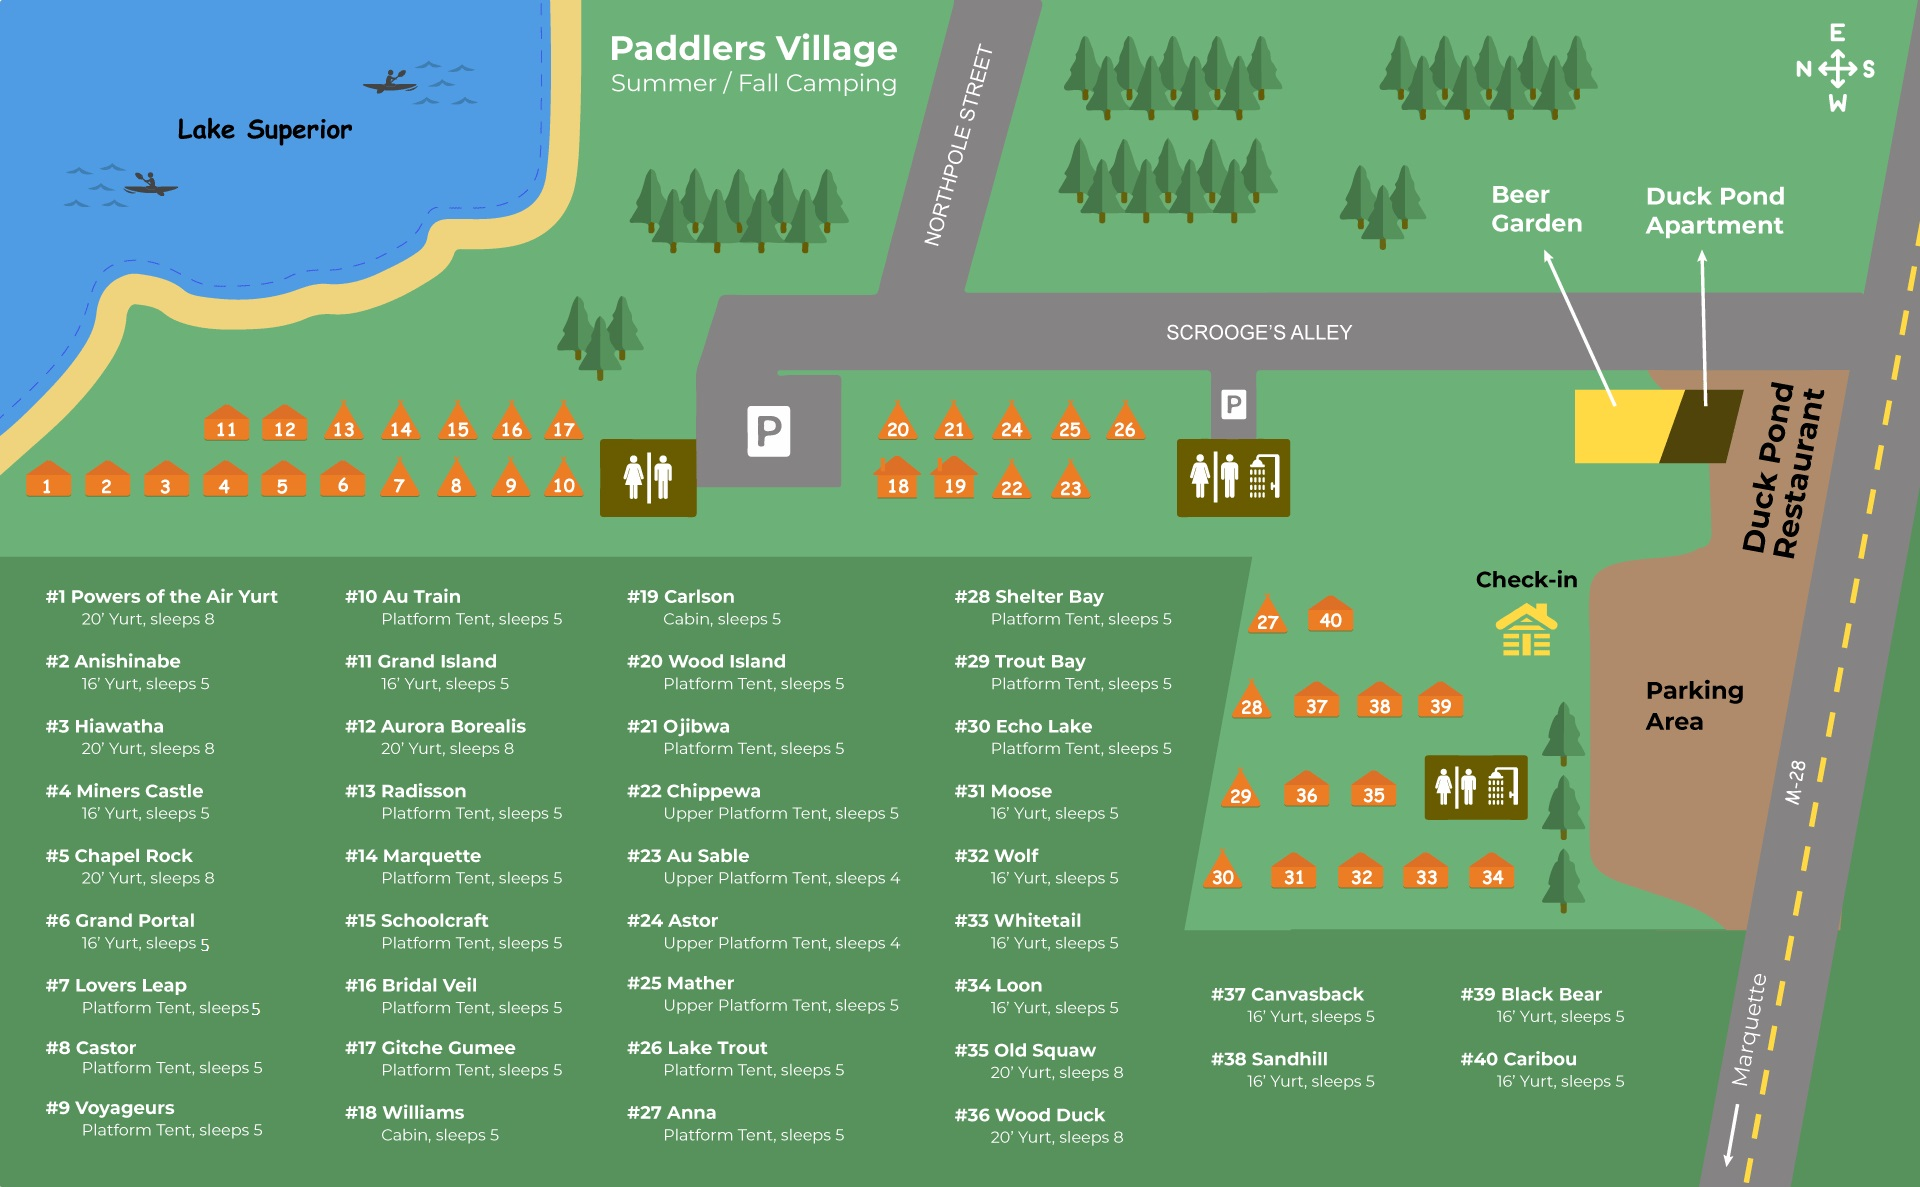 paddlers-village-map-2021 Updated